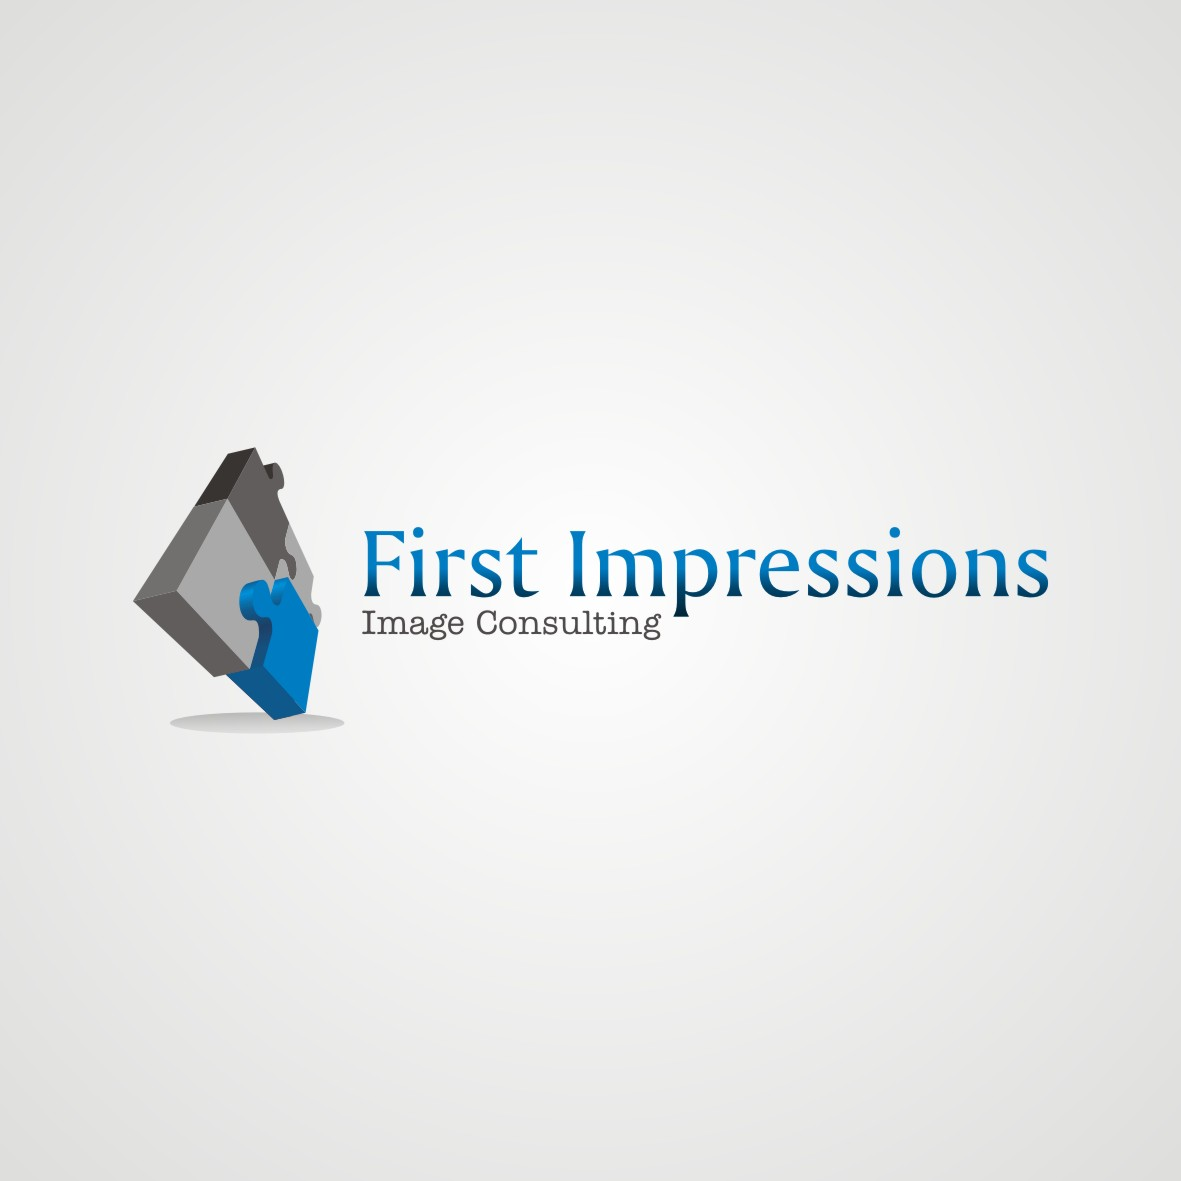 Logo Design by arteo_design - Entry No. 47 in the Logo Design Contest First Impressions Image Consulting Logo Design.